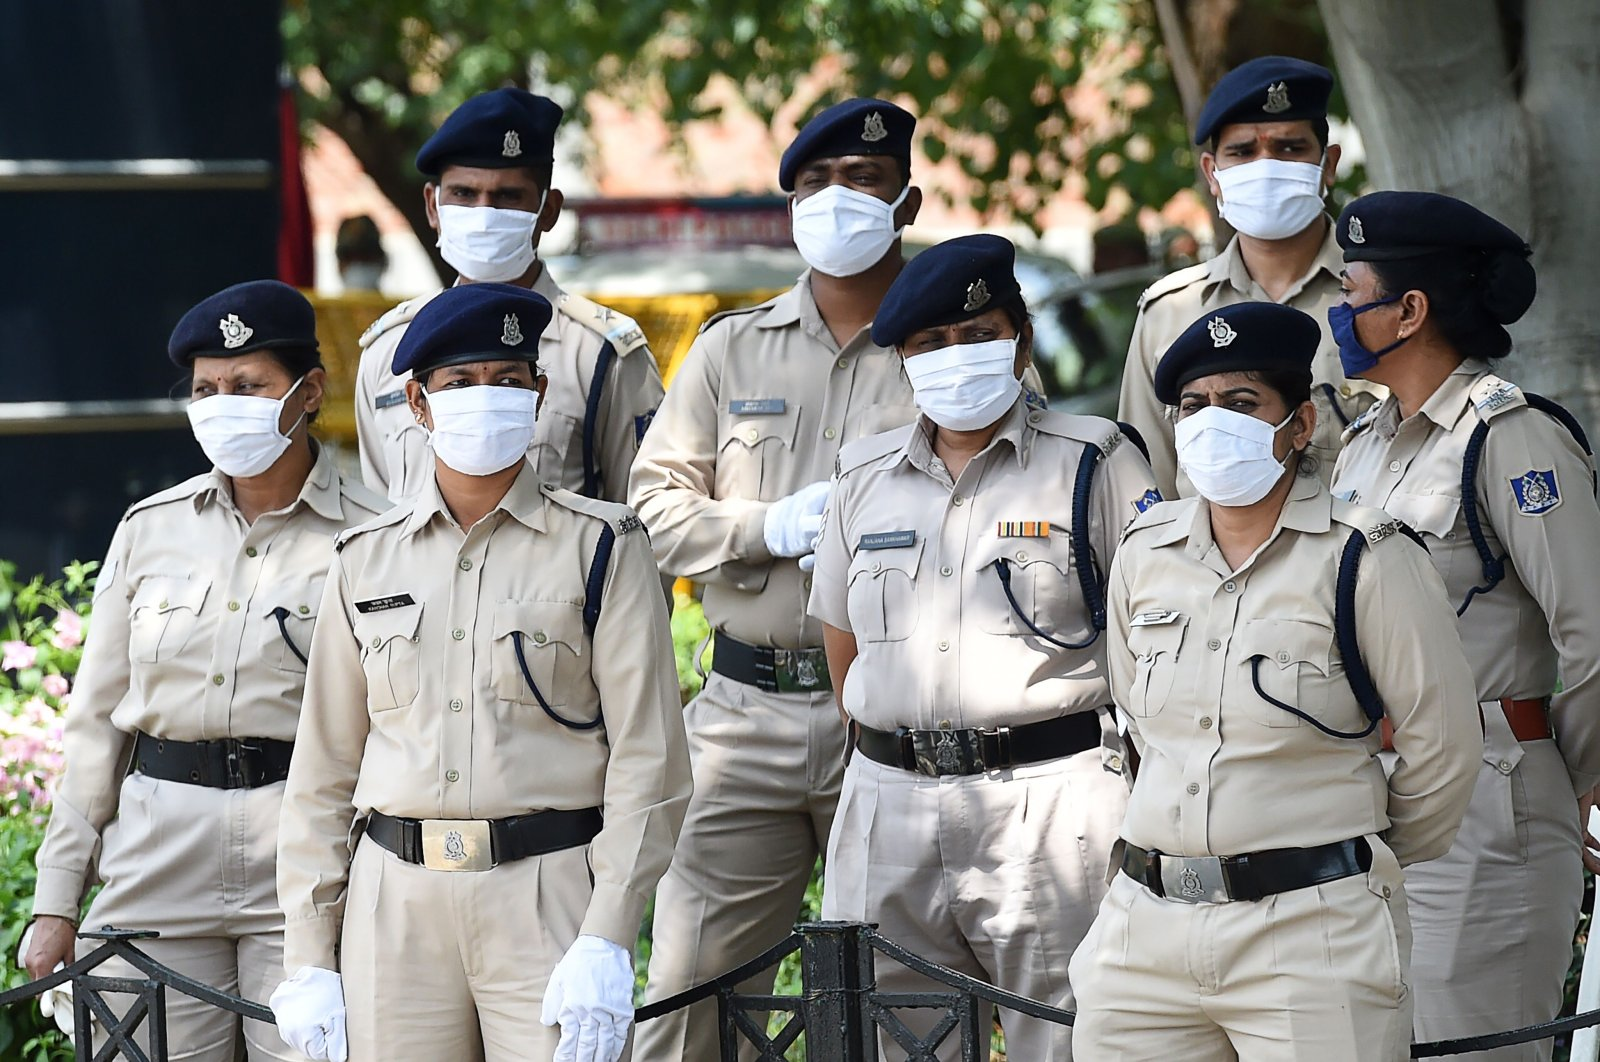 Indian security personnel stand guard as Tibetan Youth Congress (TYC) activists stage a protest against China in support of India outside the Chinese embassy in New Delhi, July 11, 2020. (AFP Photo)